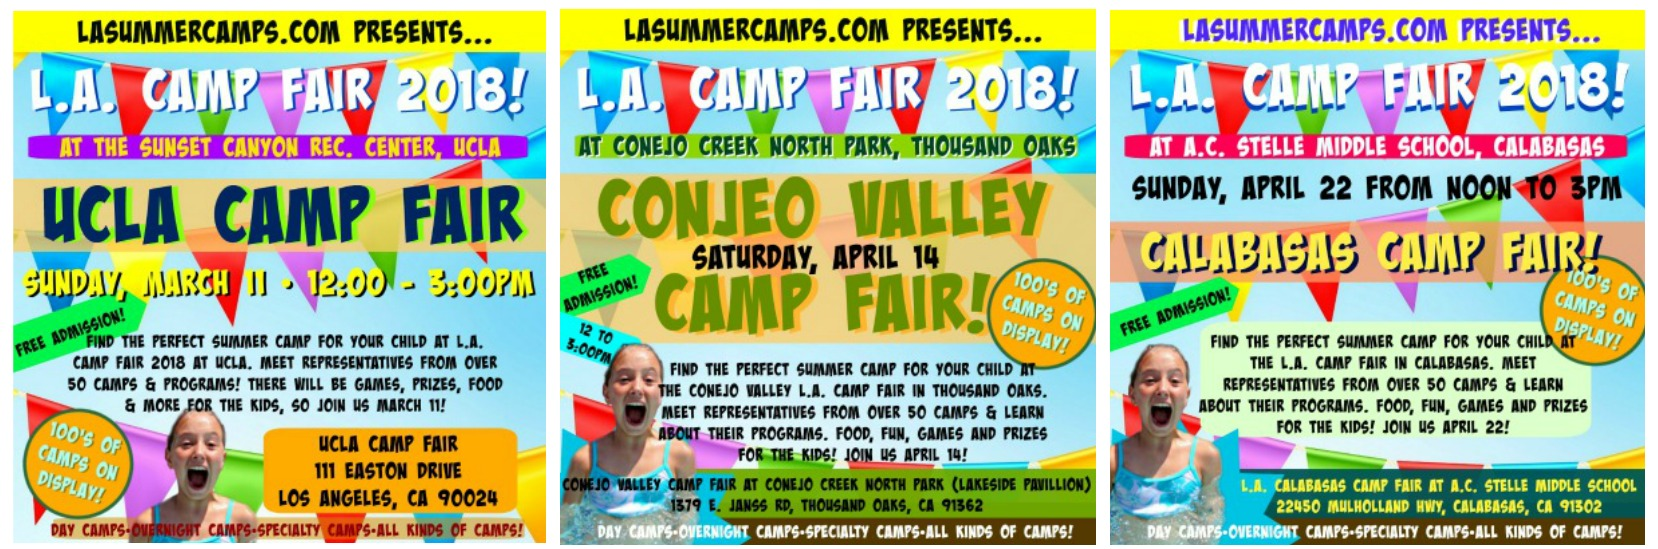 Image of all three L.A. Camp Fair 2018 event locations at UCLA, Conejo Valley and Calabasas